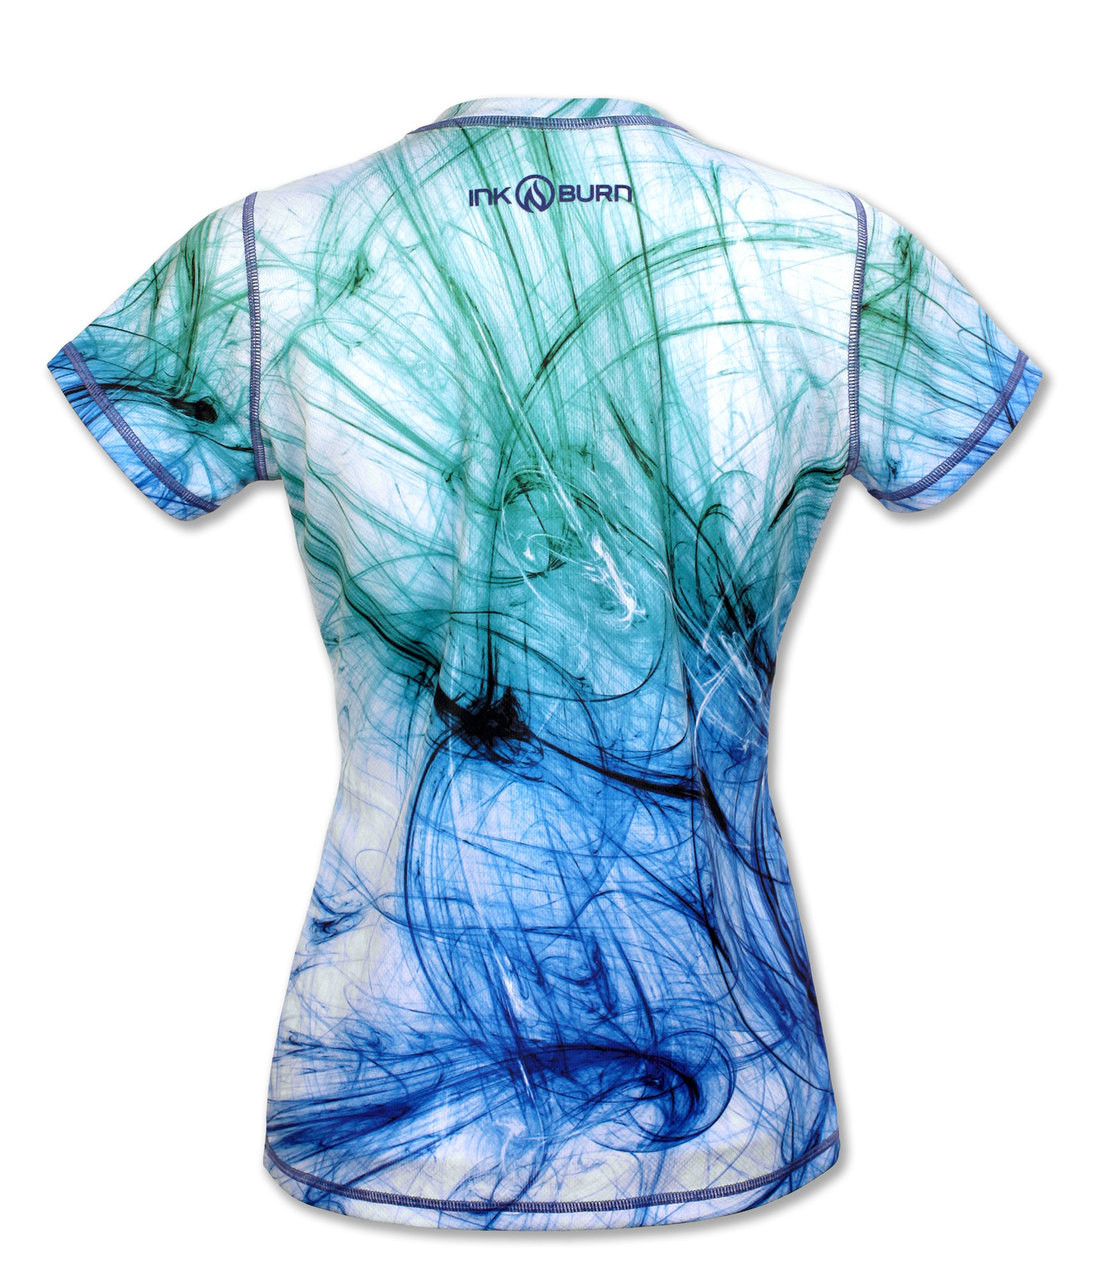 INKnBURN Women's Sketch Tech Shirt Front